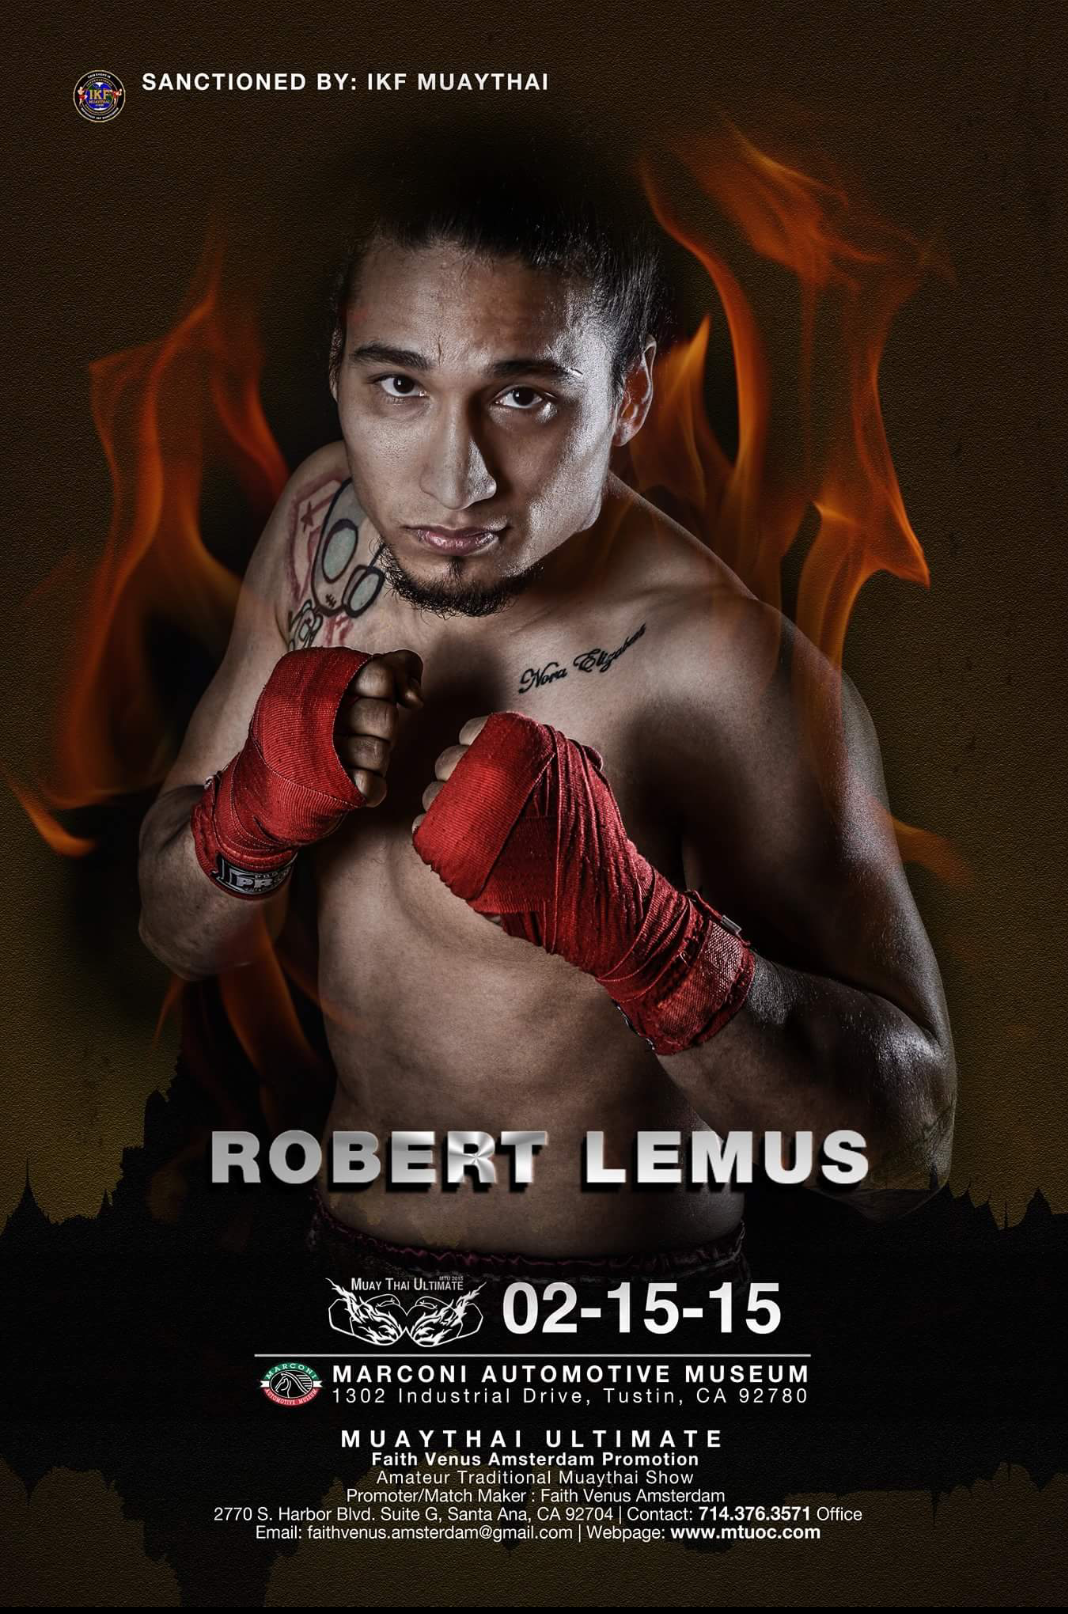 Robert Lemus IKF Title Fight Poster